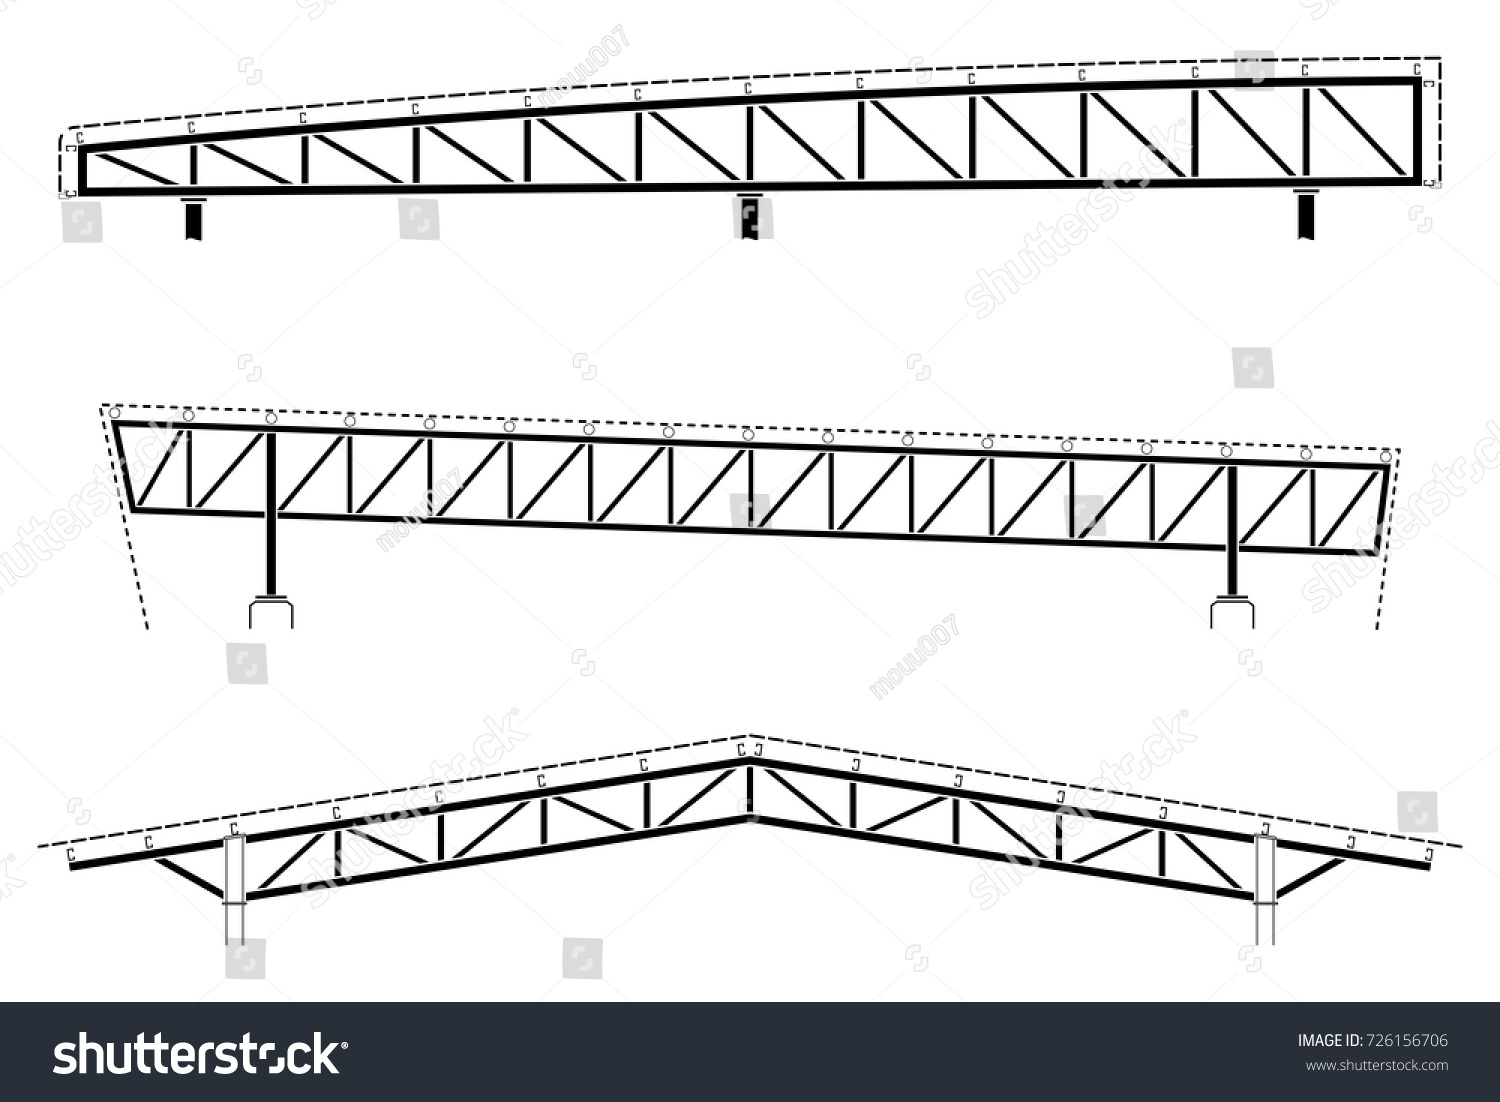 Roofing Building Steel Frame Detail Roof Stock Vector